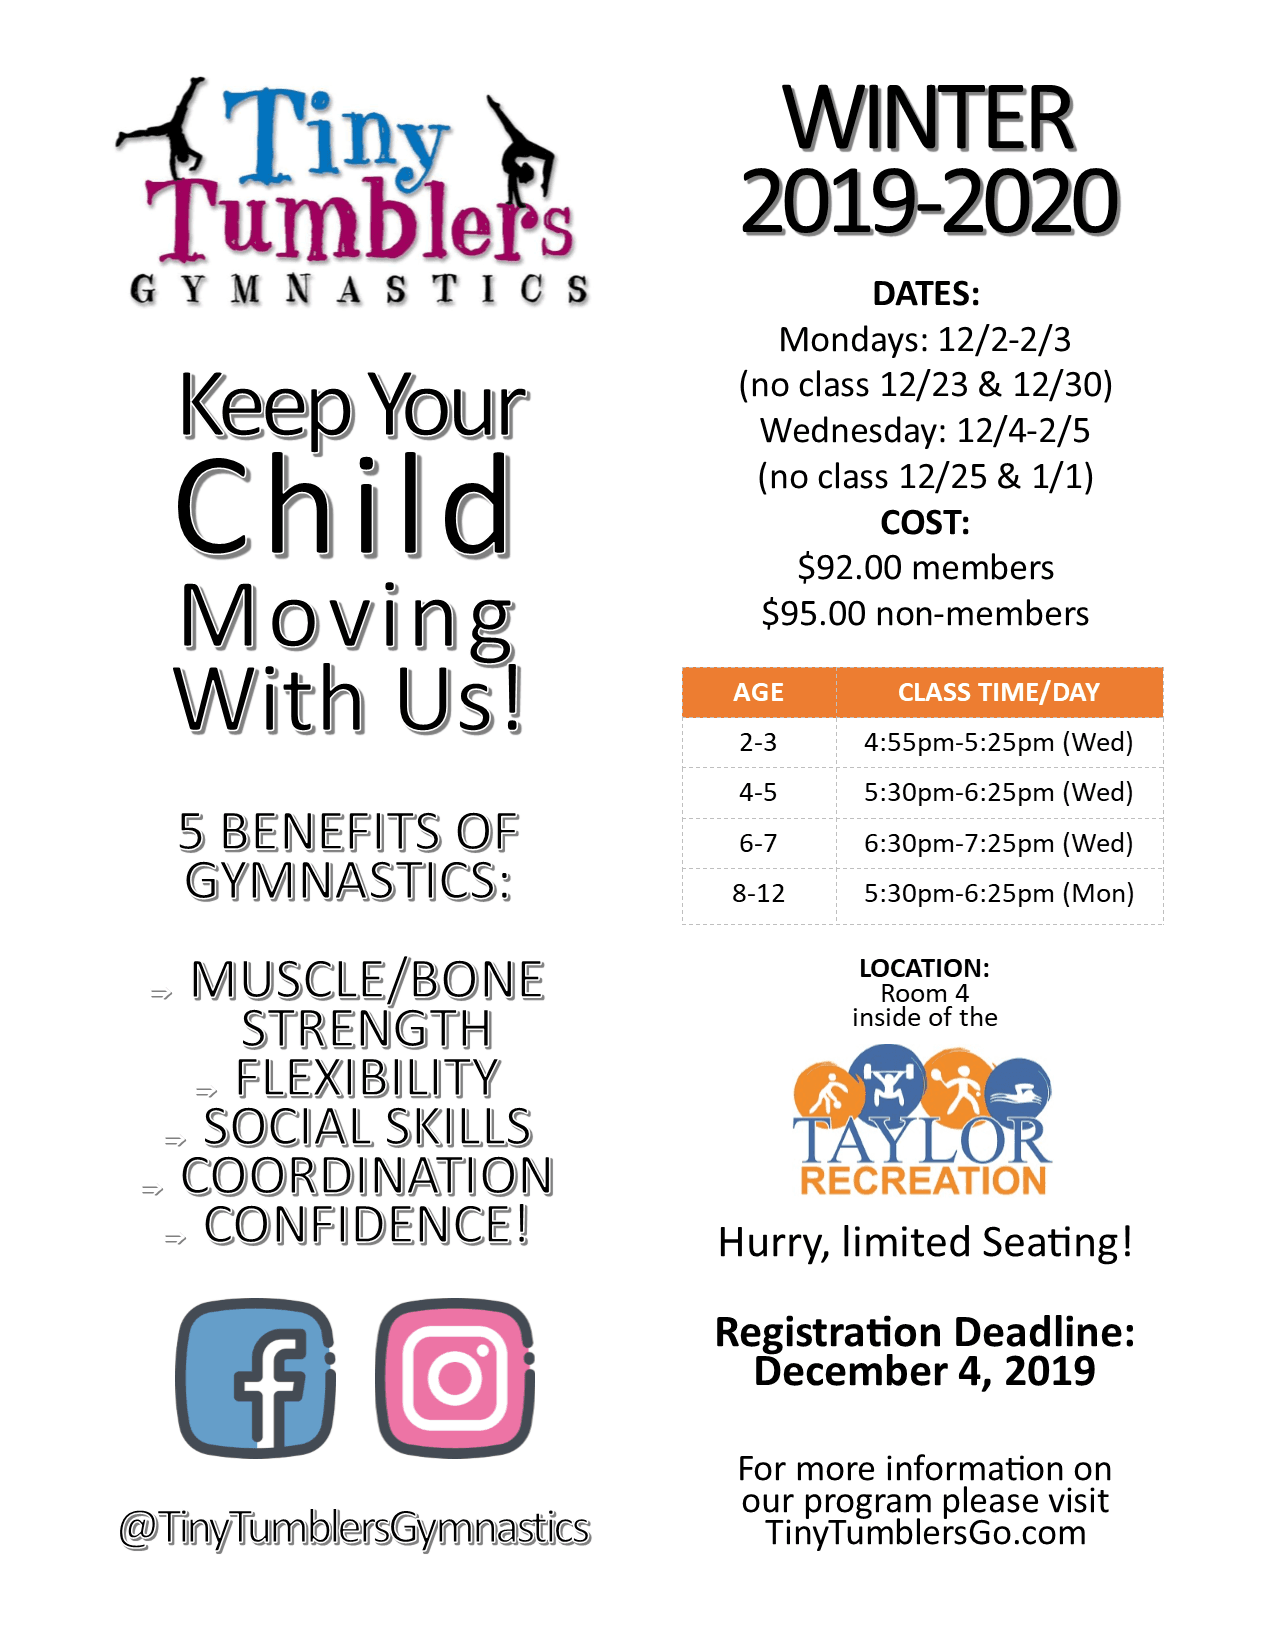 Tiny Tumblers Gymnastics Schedules